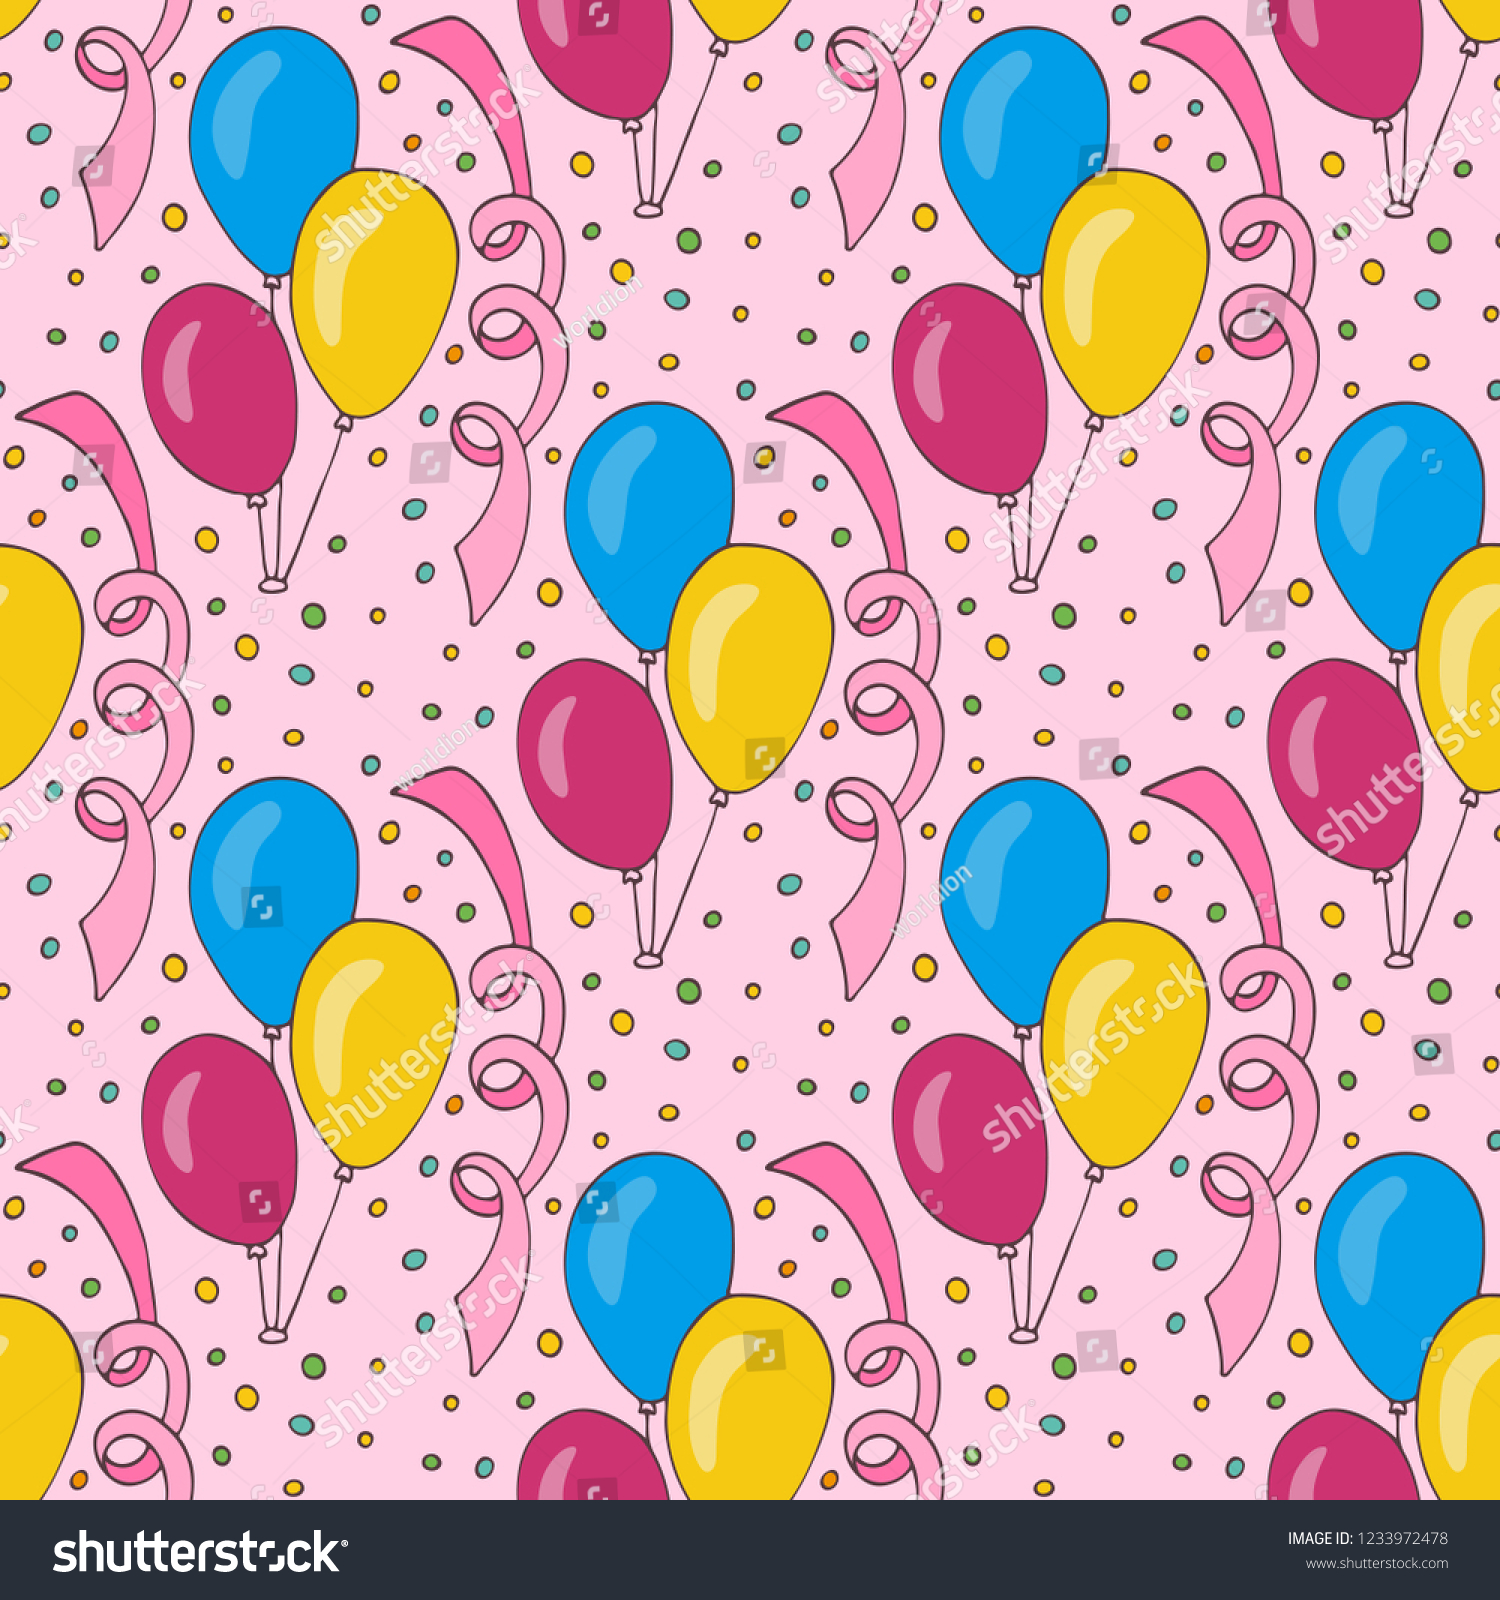 Birthday Wrapping Paper Textile Print For Baby Interior Decor Pink Background With Blue Yellow And Ballon Funny Kids Vector Pattern Design